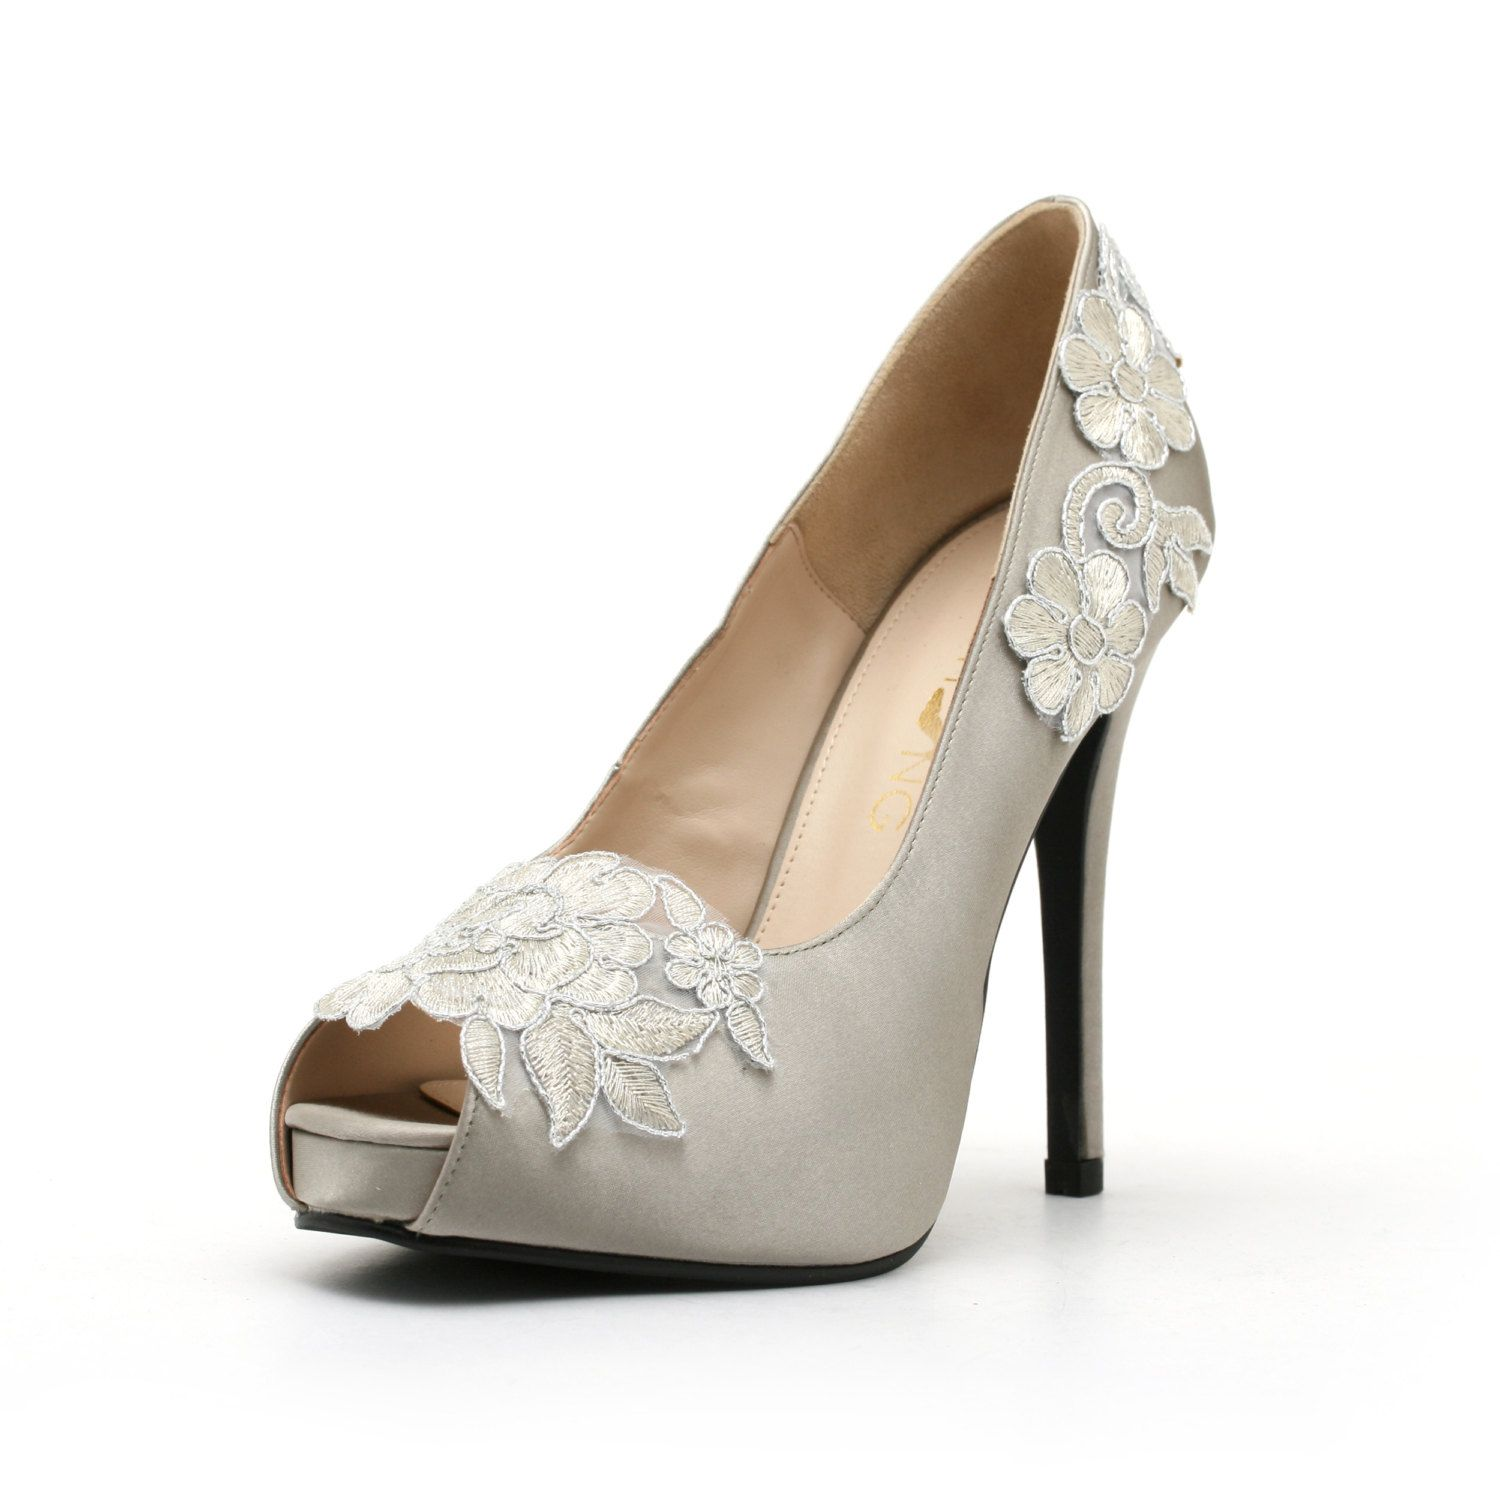 Silver Embroidery Wedding Heels. Silver Wedding Shoes. Silver Lace Wedding  Shoes.  98.00 6b9d7ac6229a